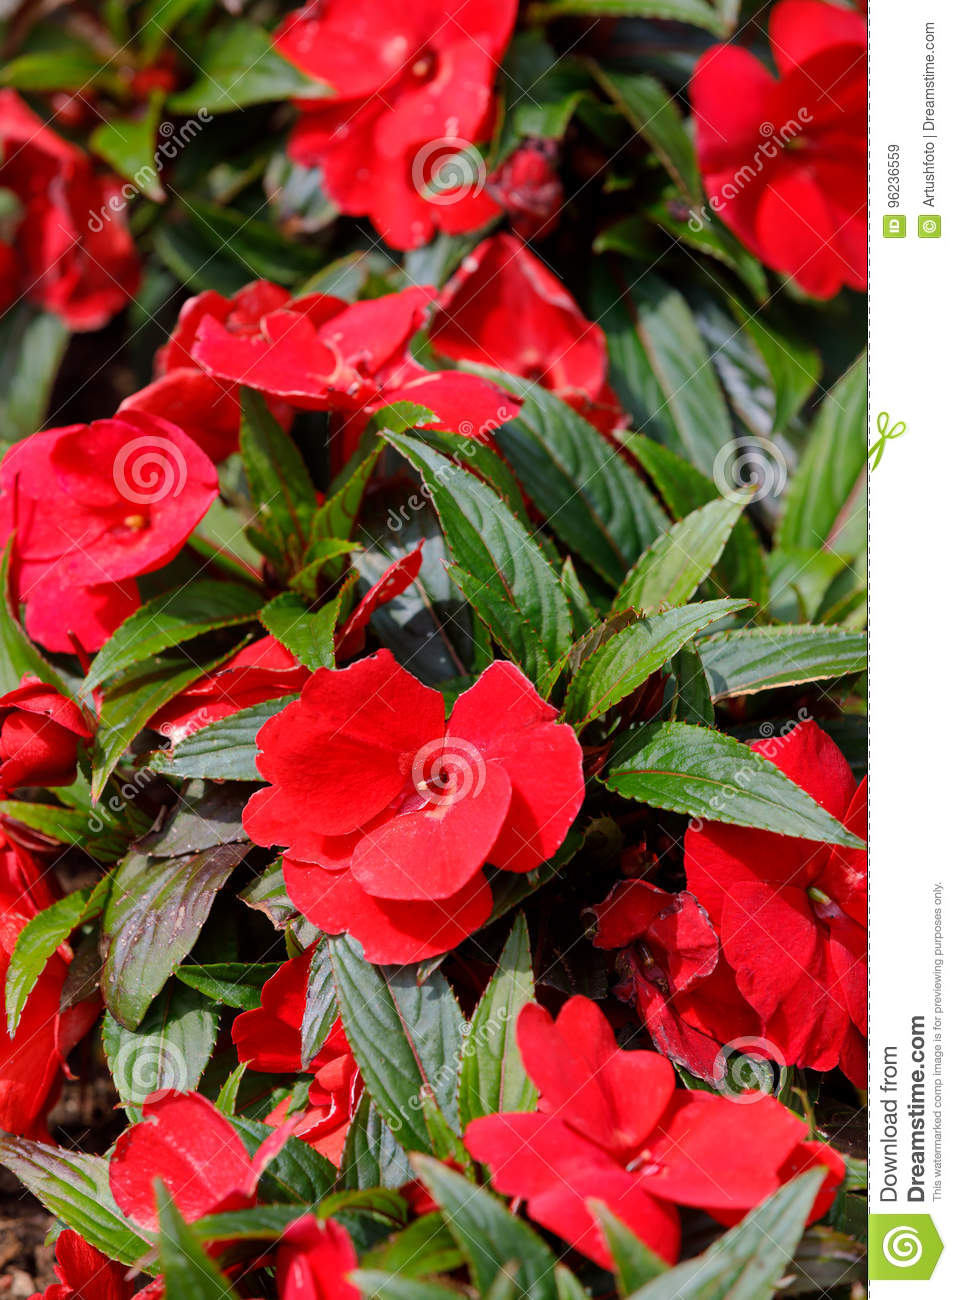 Red New Guinea Impatiens Flowers In Pots Stock Image Image Of